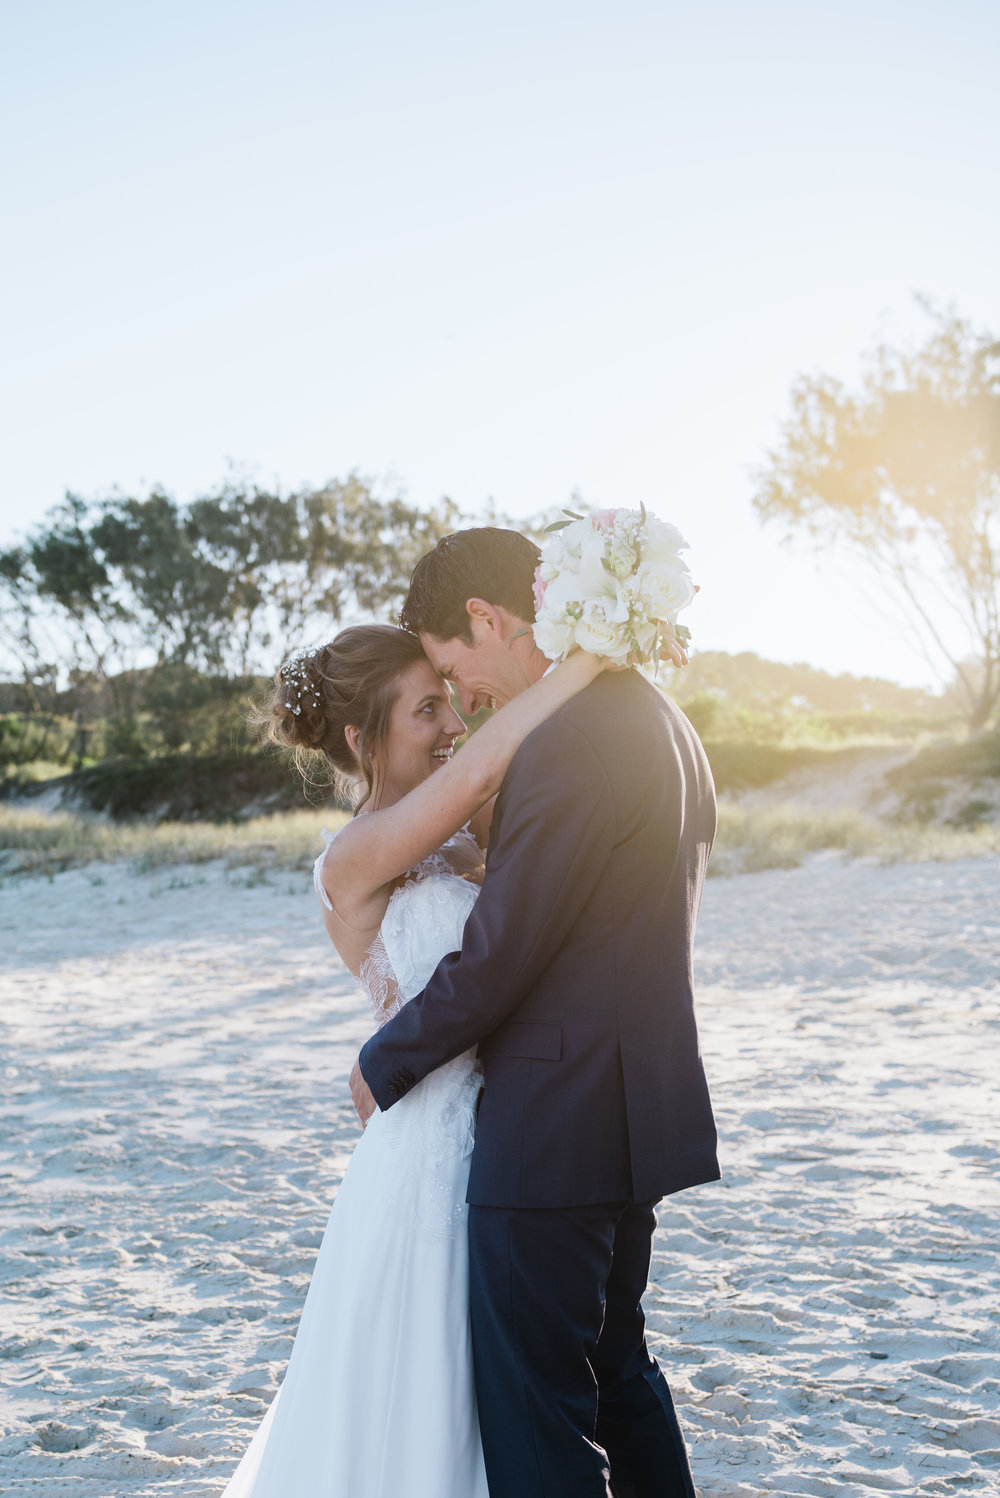 Am and Sam- skyla sage photography weddings, families, byron bay,tweed coast,kingscliff,cabarita,gold coast-406.jpg